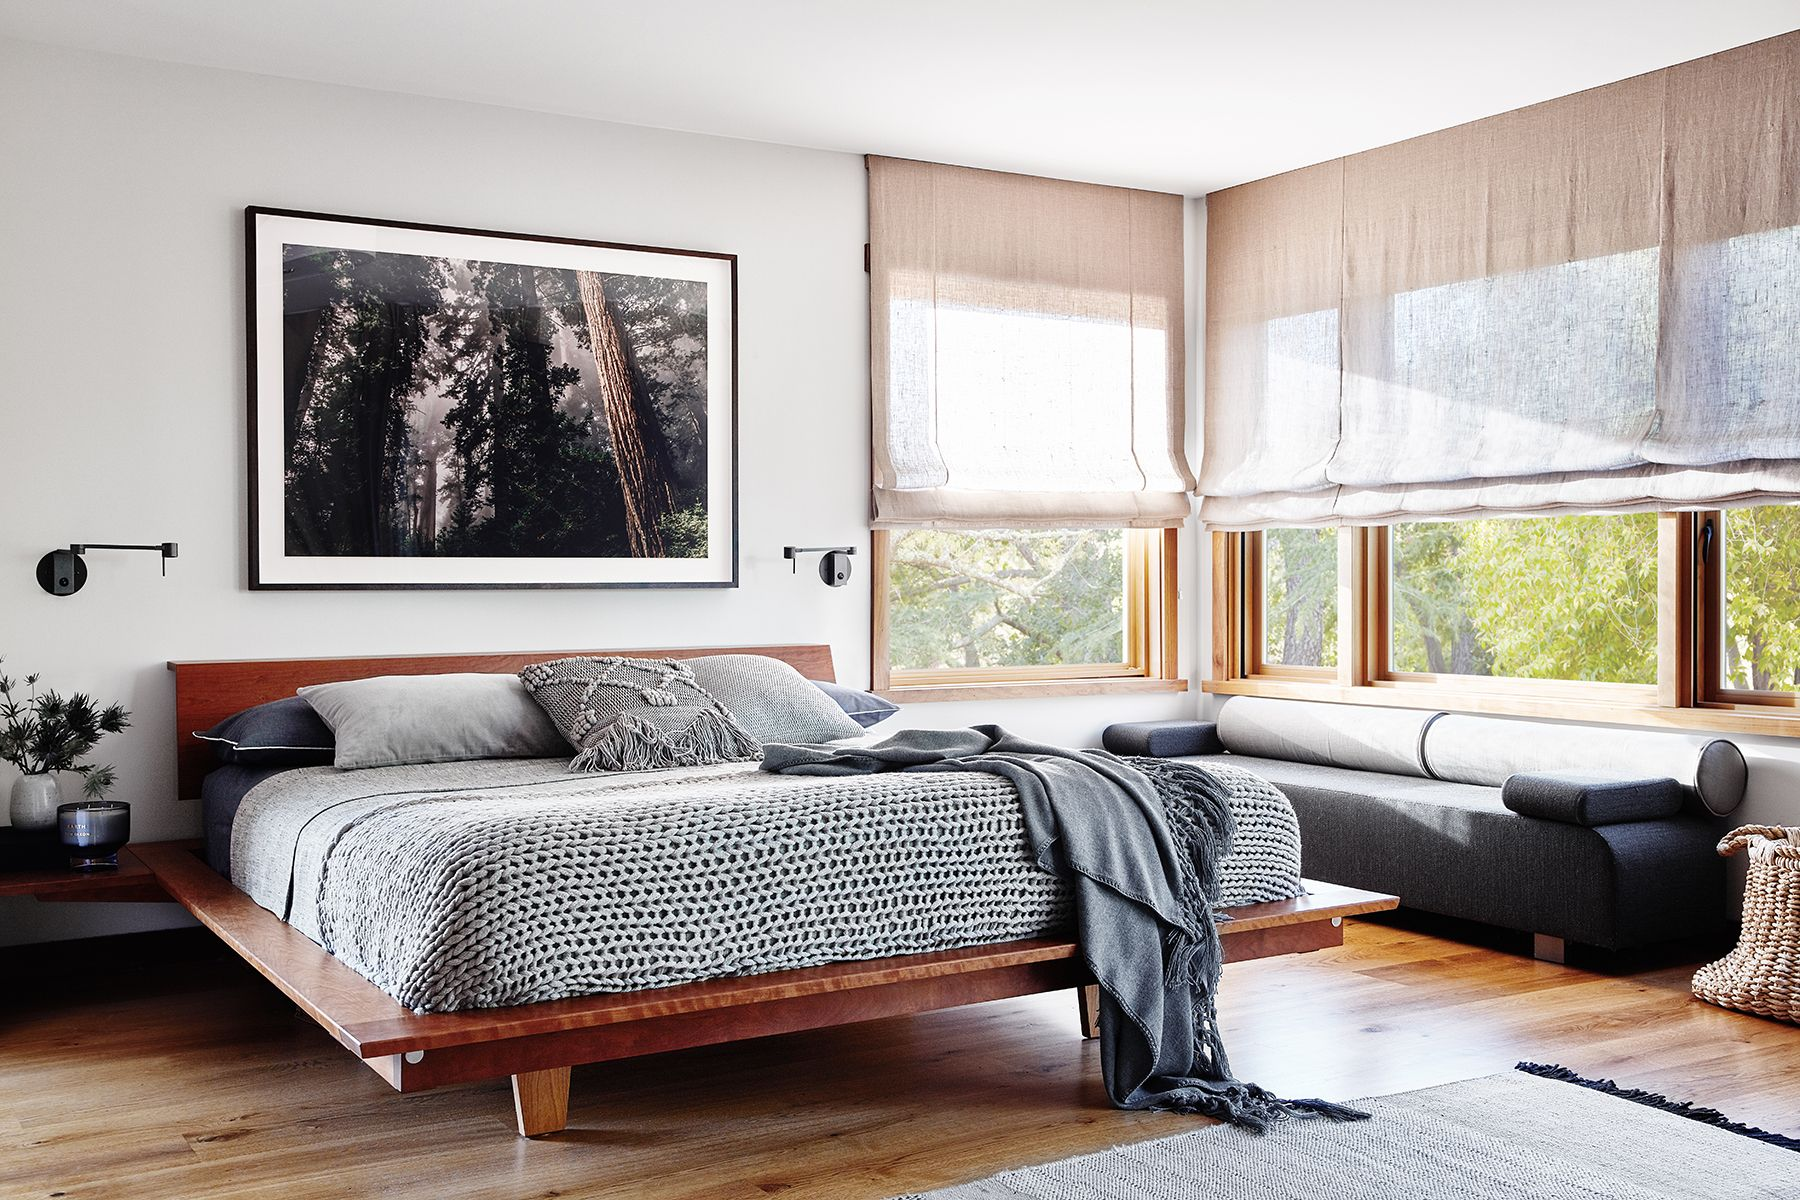 28 Sophisticated Bedrooms with Low Platform Beds